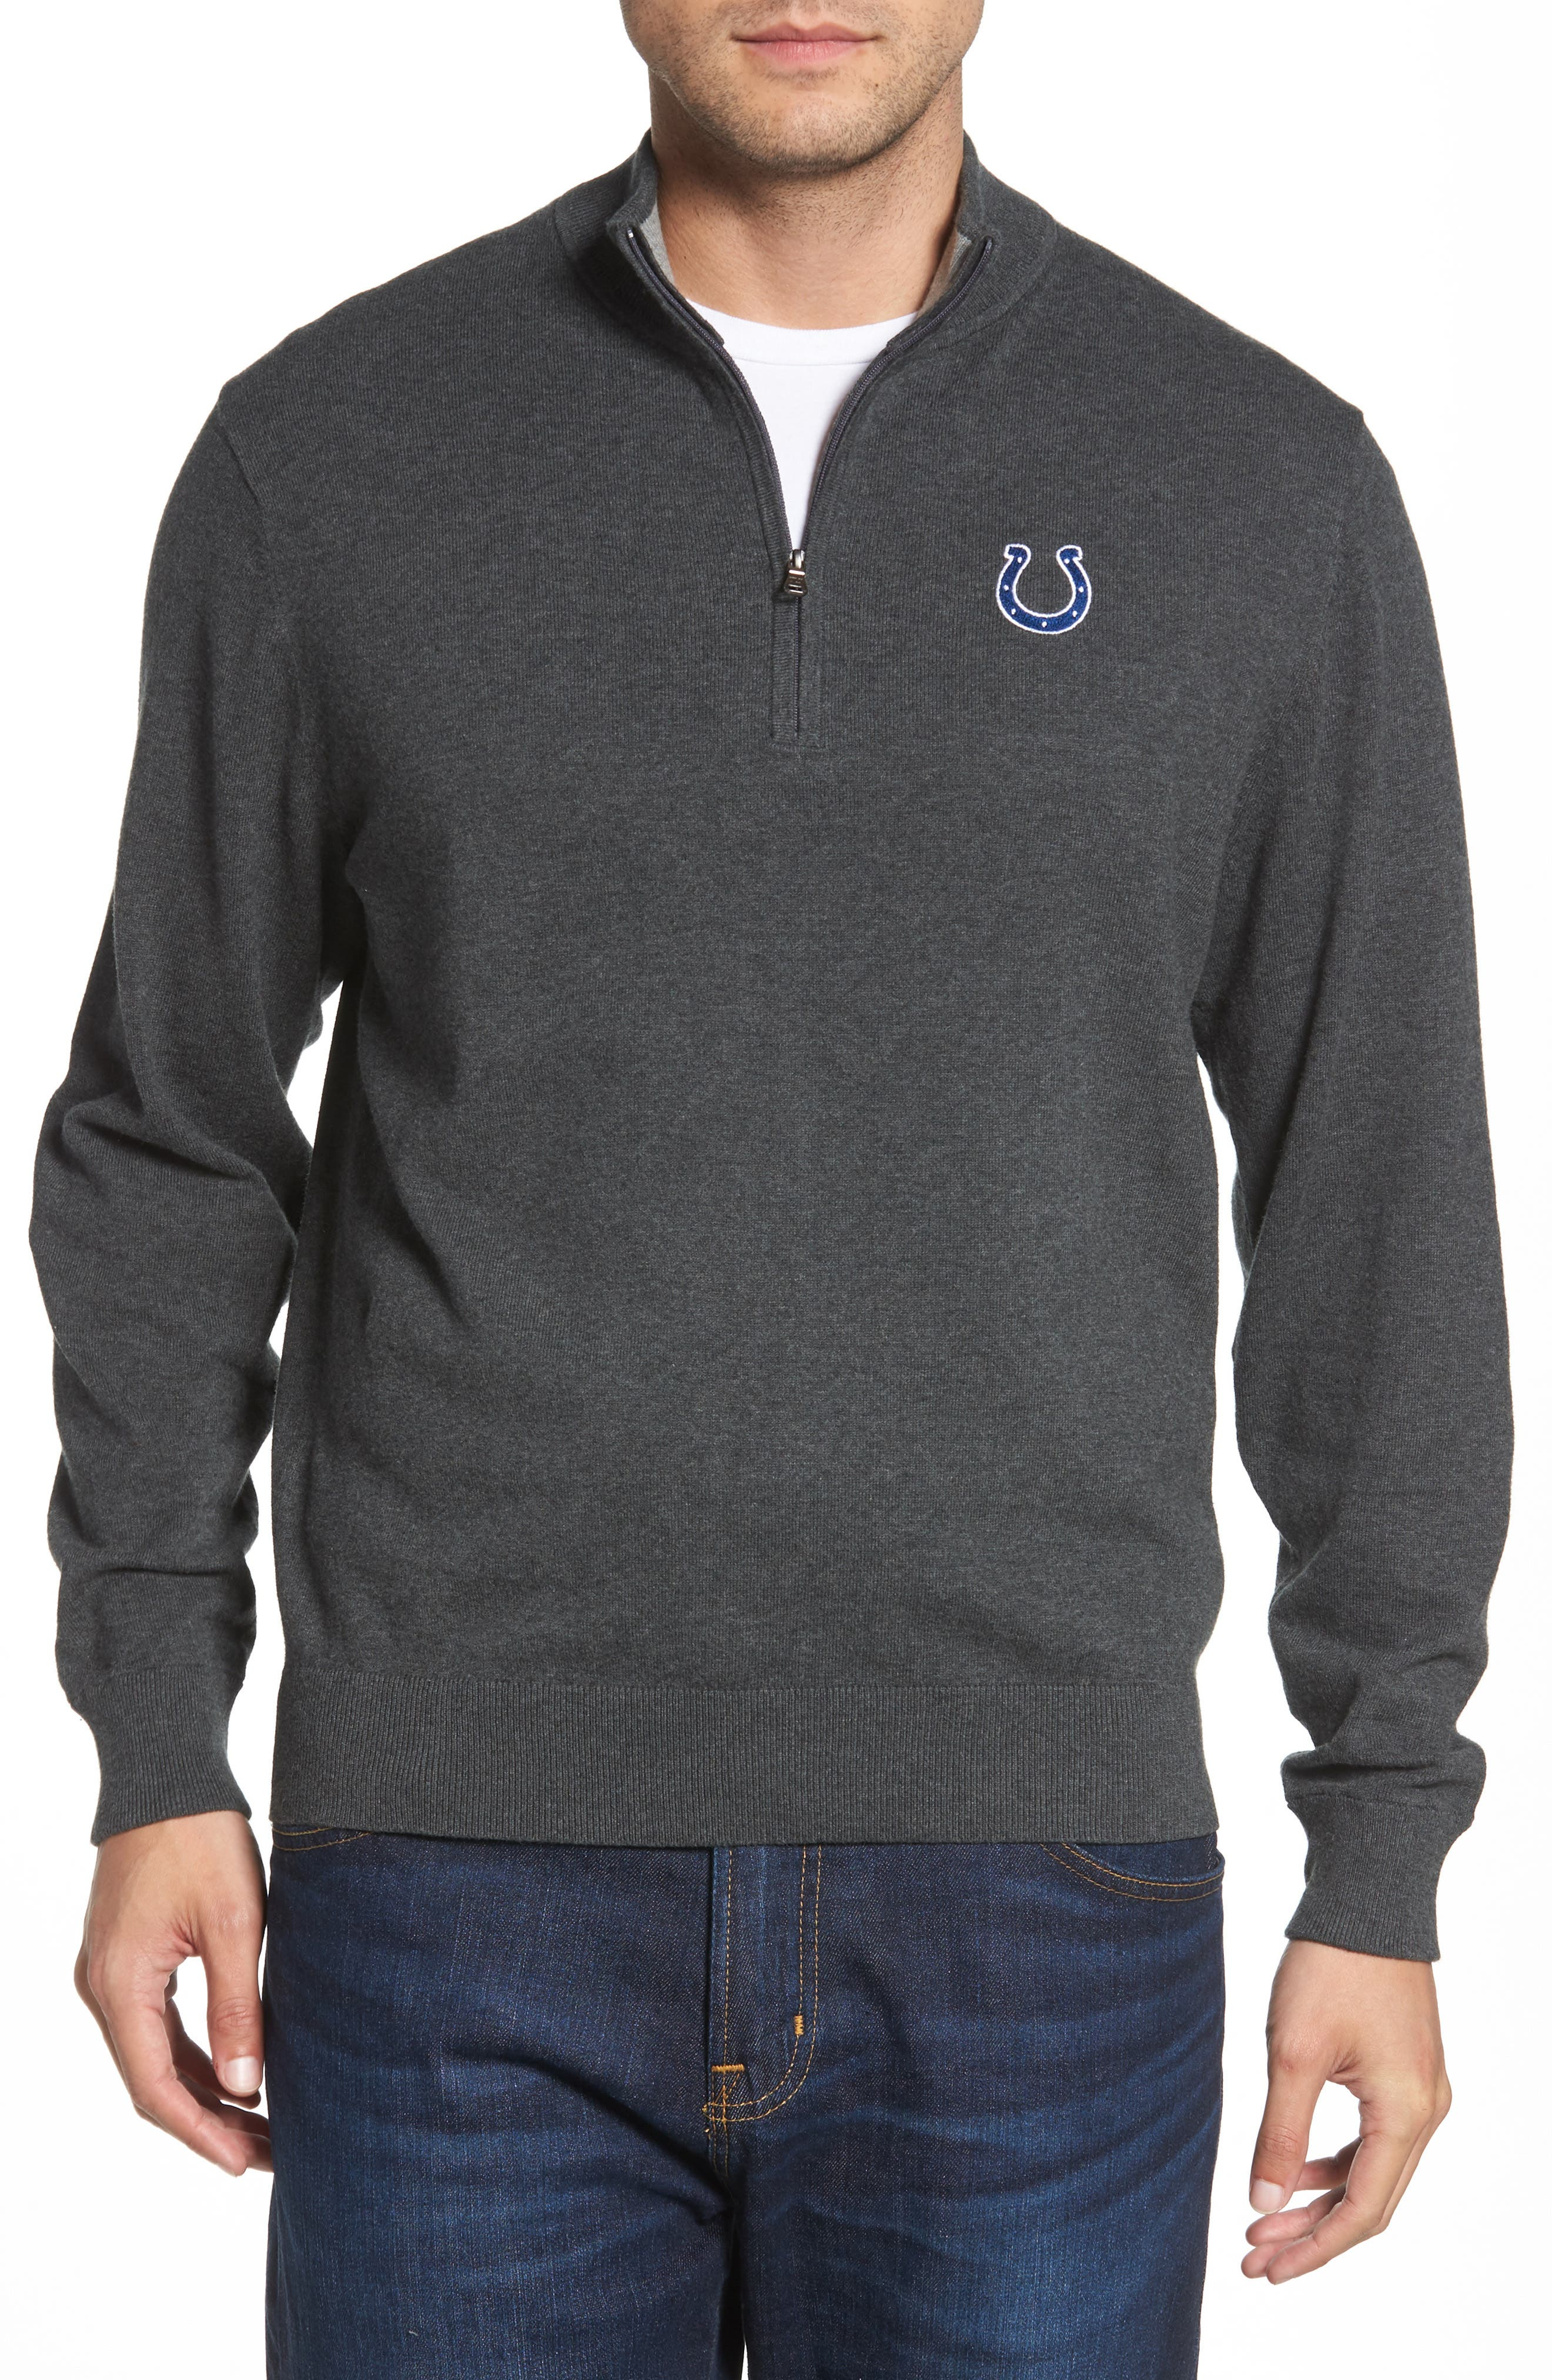 CUTTER & BUCK Indianapolis Colts - Lakemont Regular Fit Quarter Zip Sweater, Main, color, CHARCOAL HEATHER